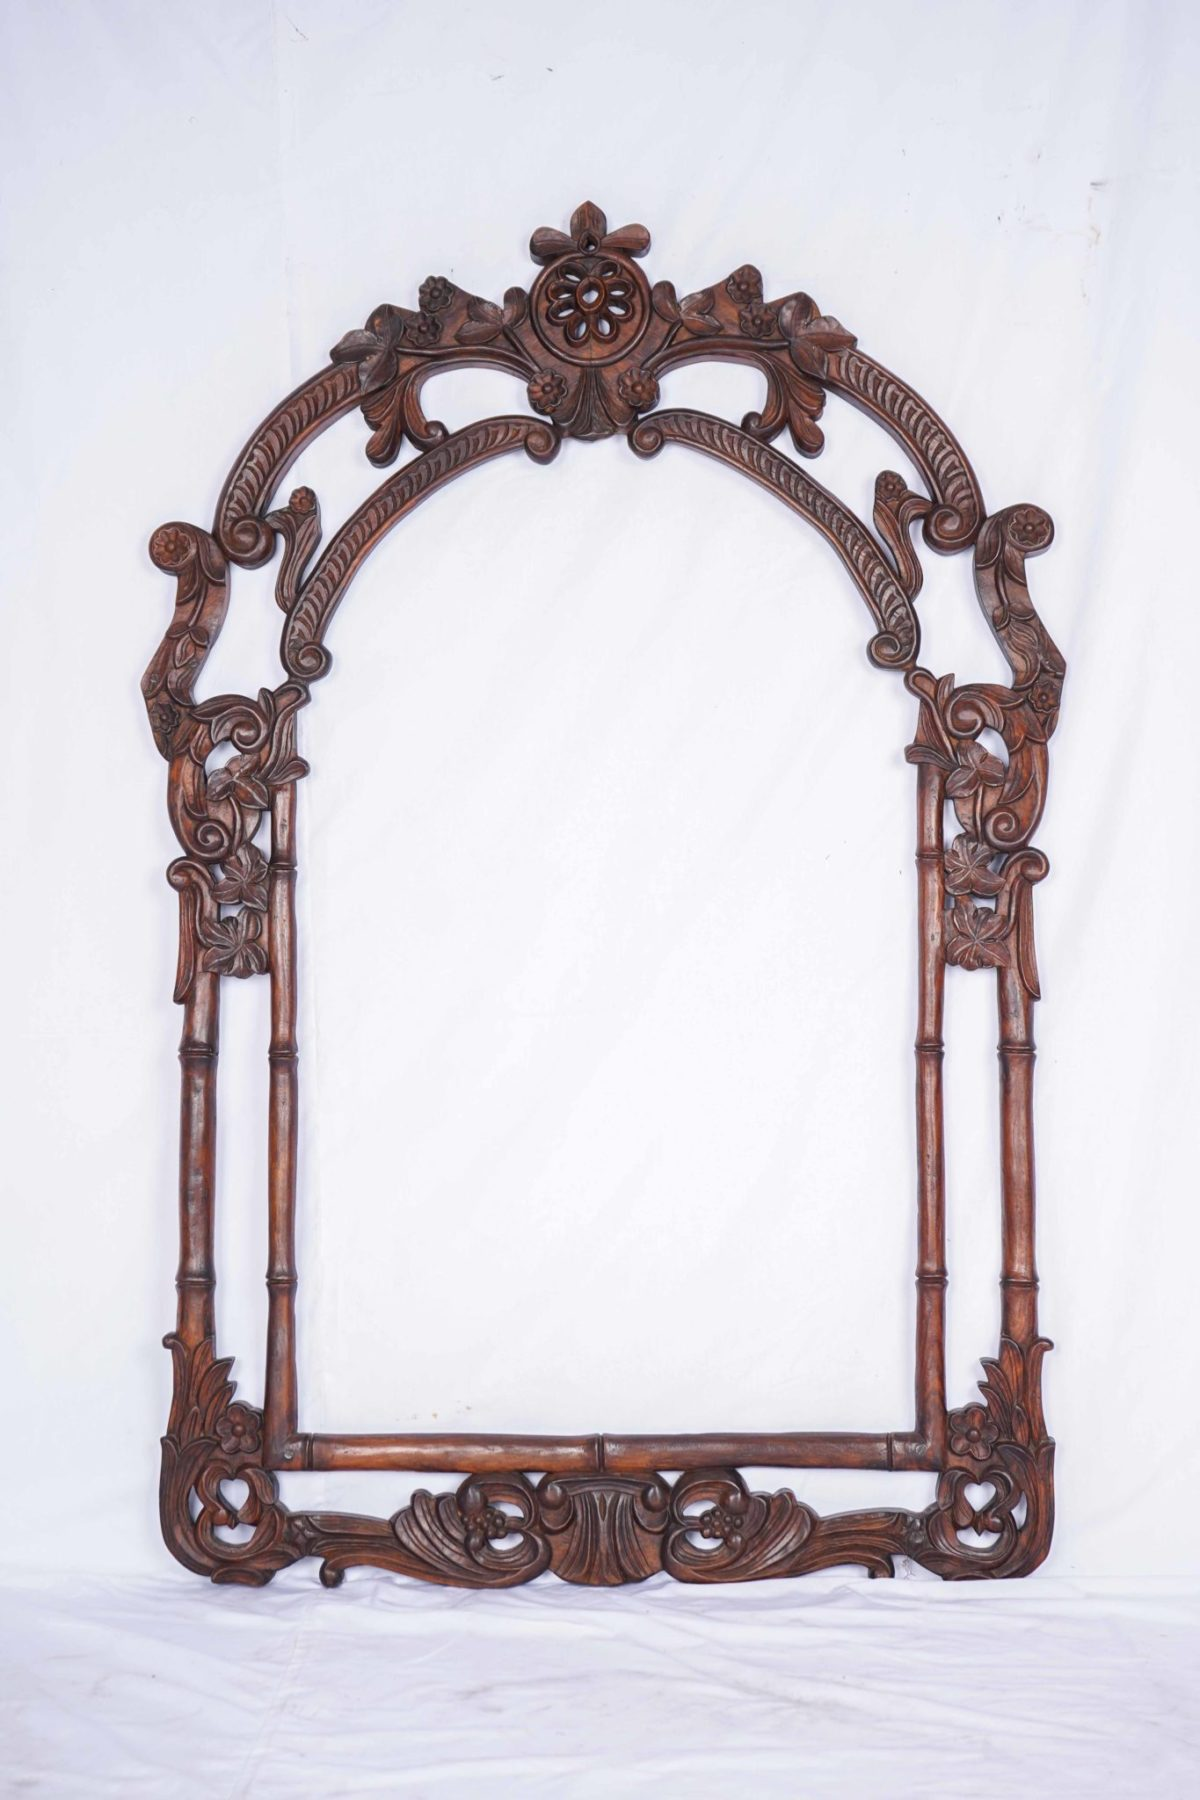 Window Wooden Frame Hand Carved by Hands from India